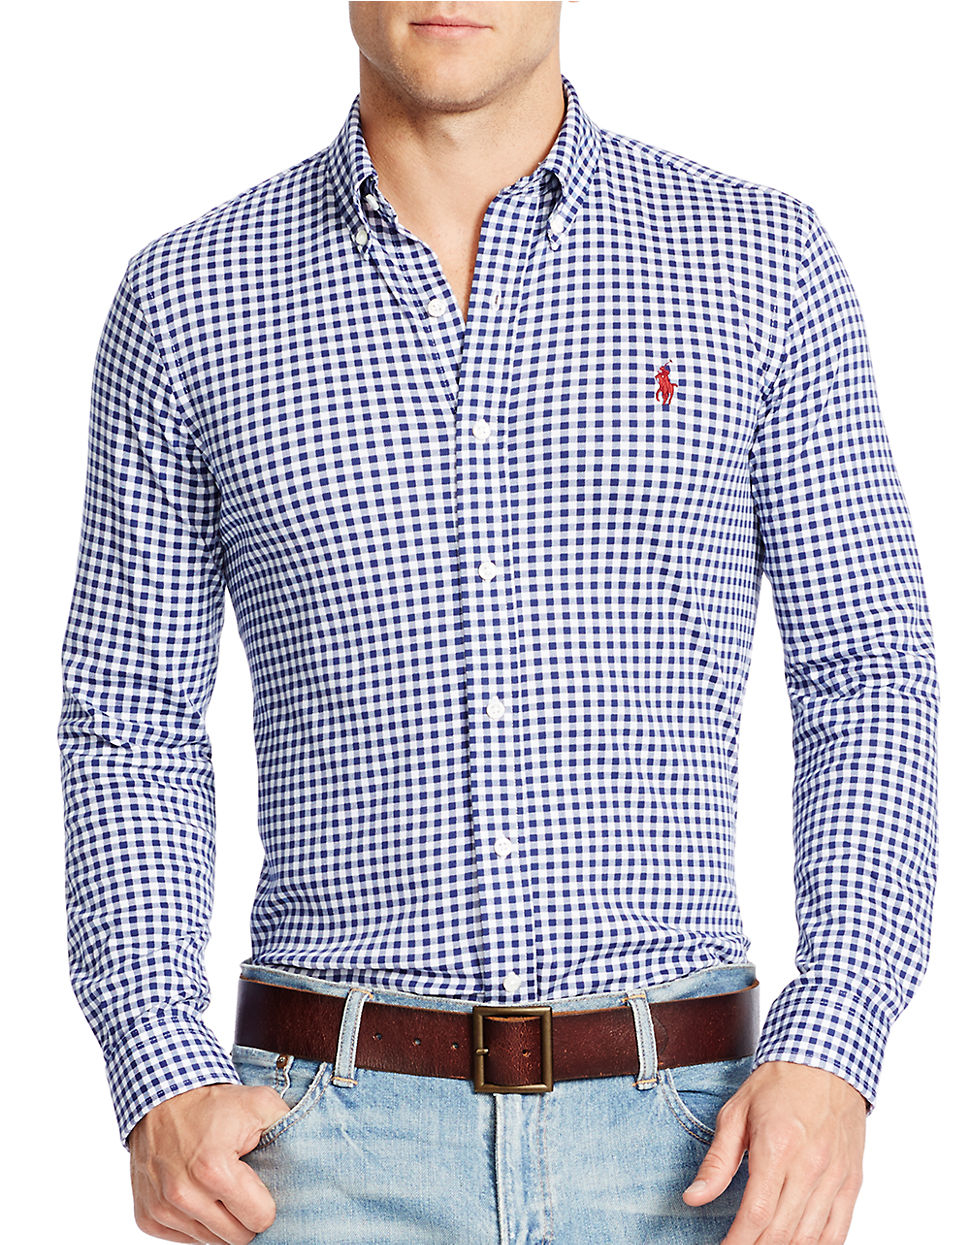 Polo Ralph Lauren Gingham Knit Dress Shirt In Blue For Men